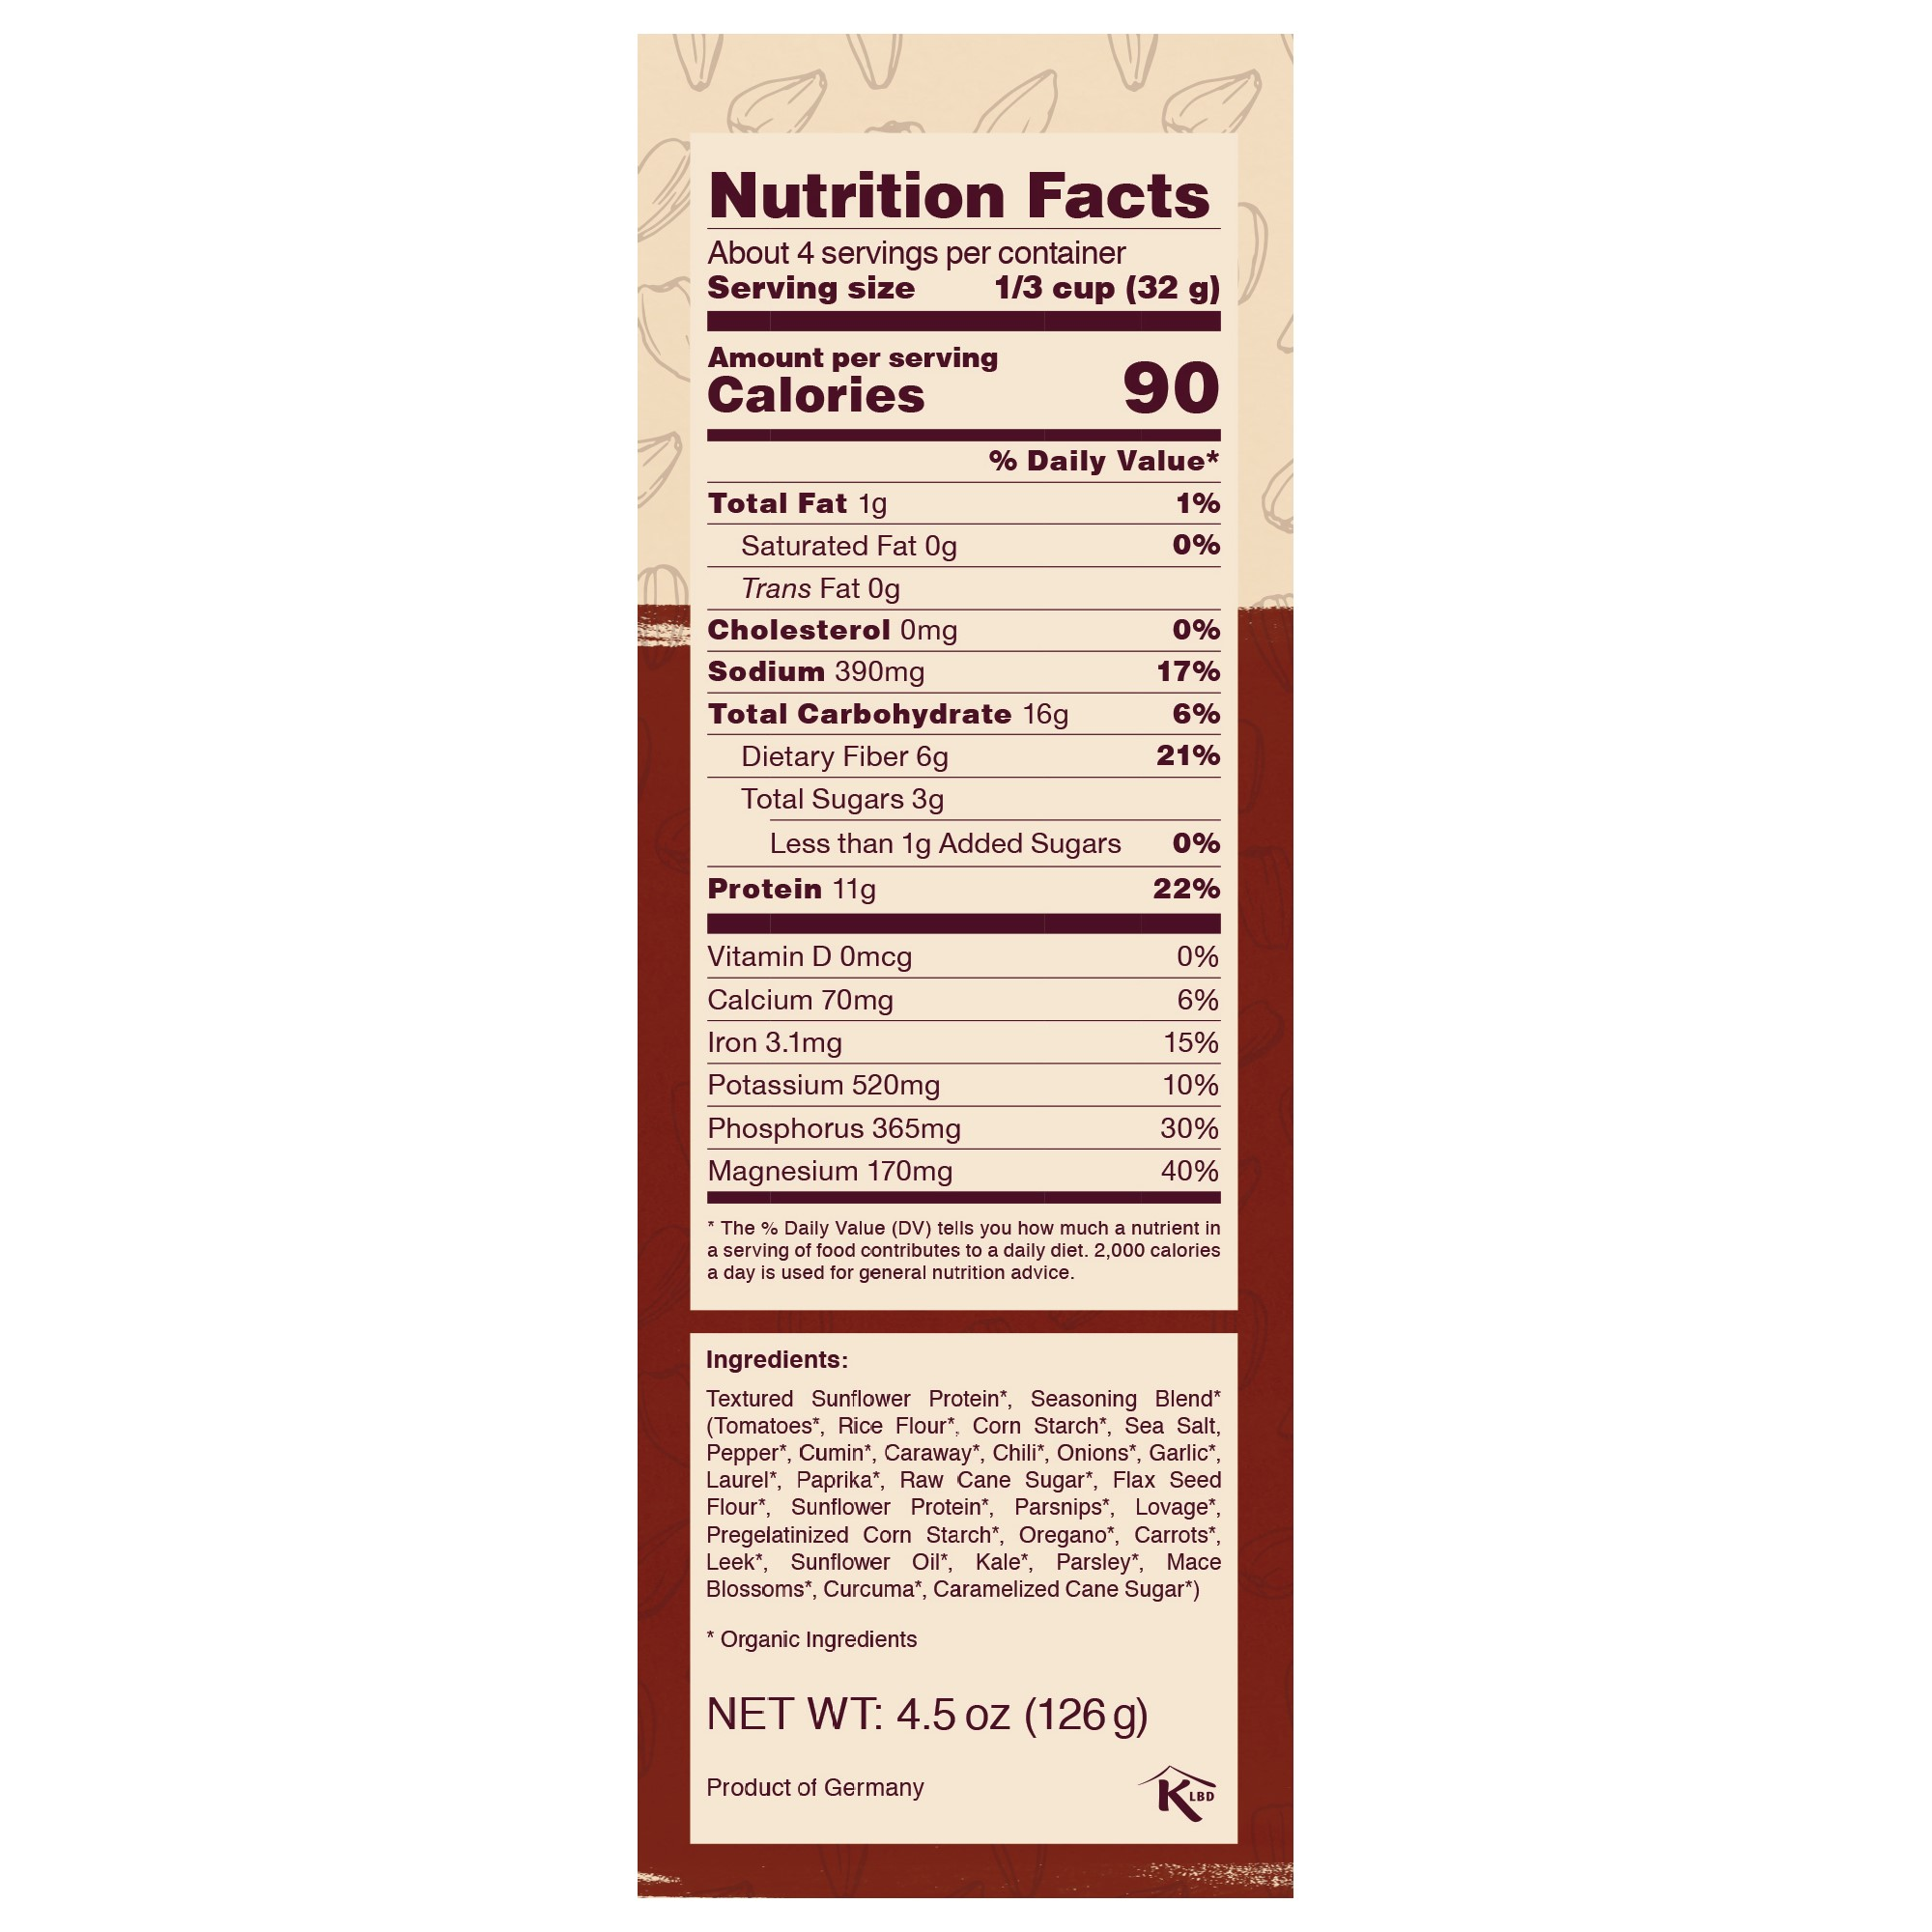 Chili sin Carne nutrition facts panel - 11g protein per serving